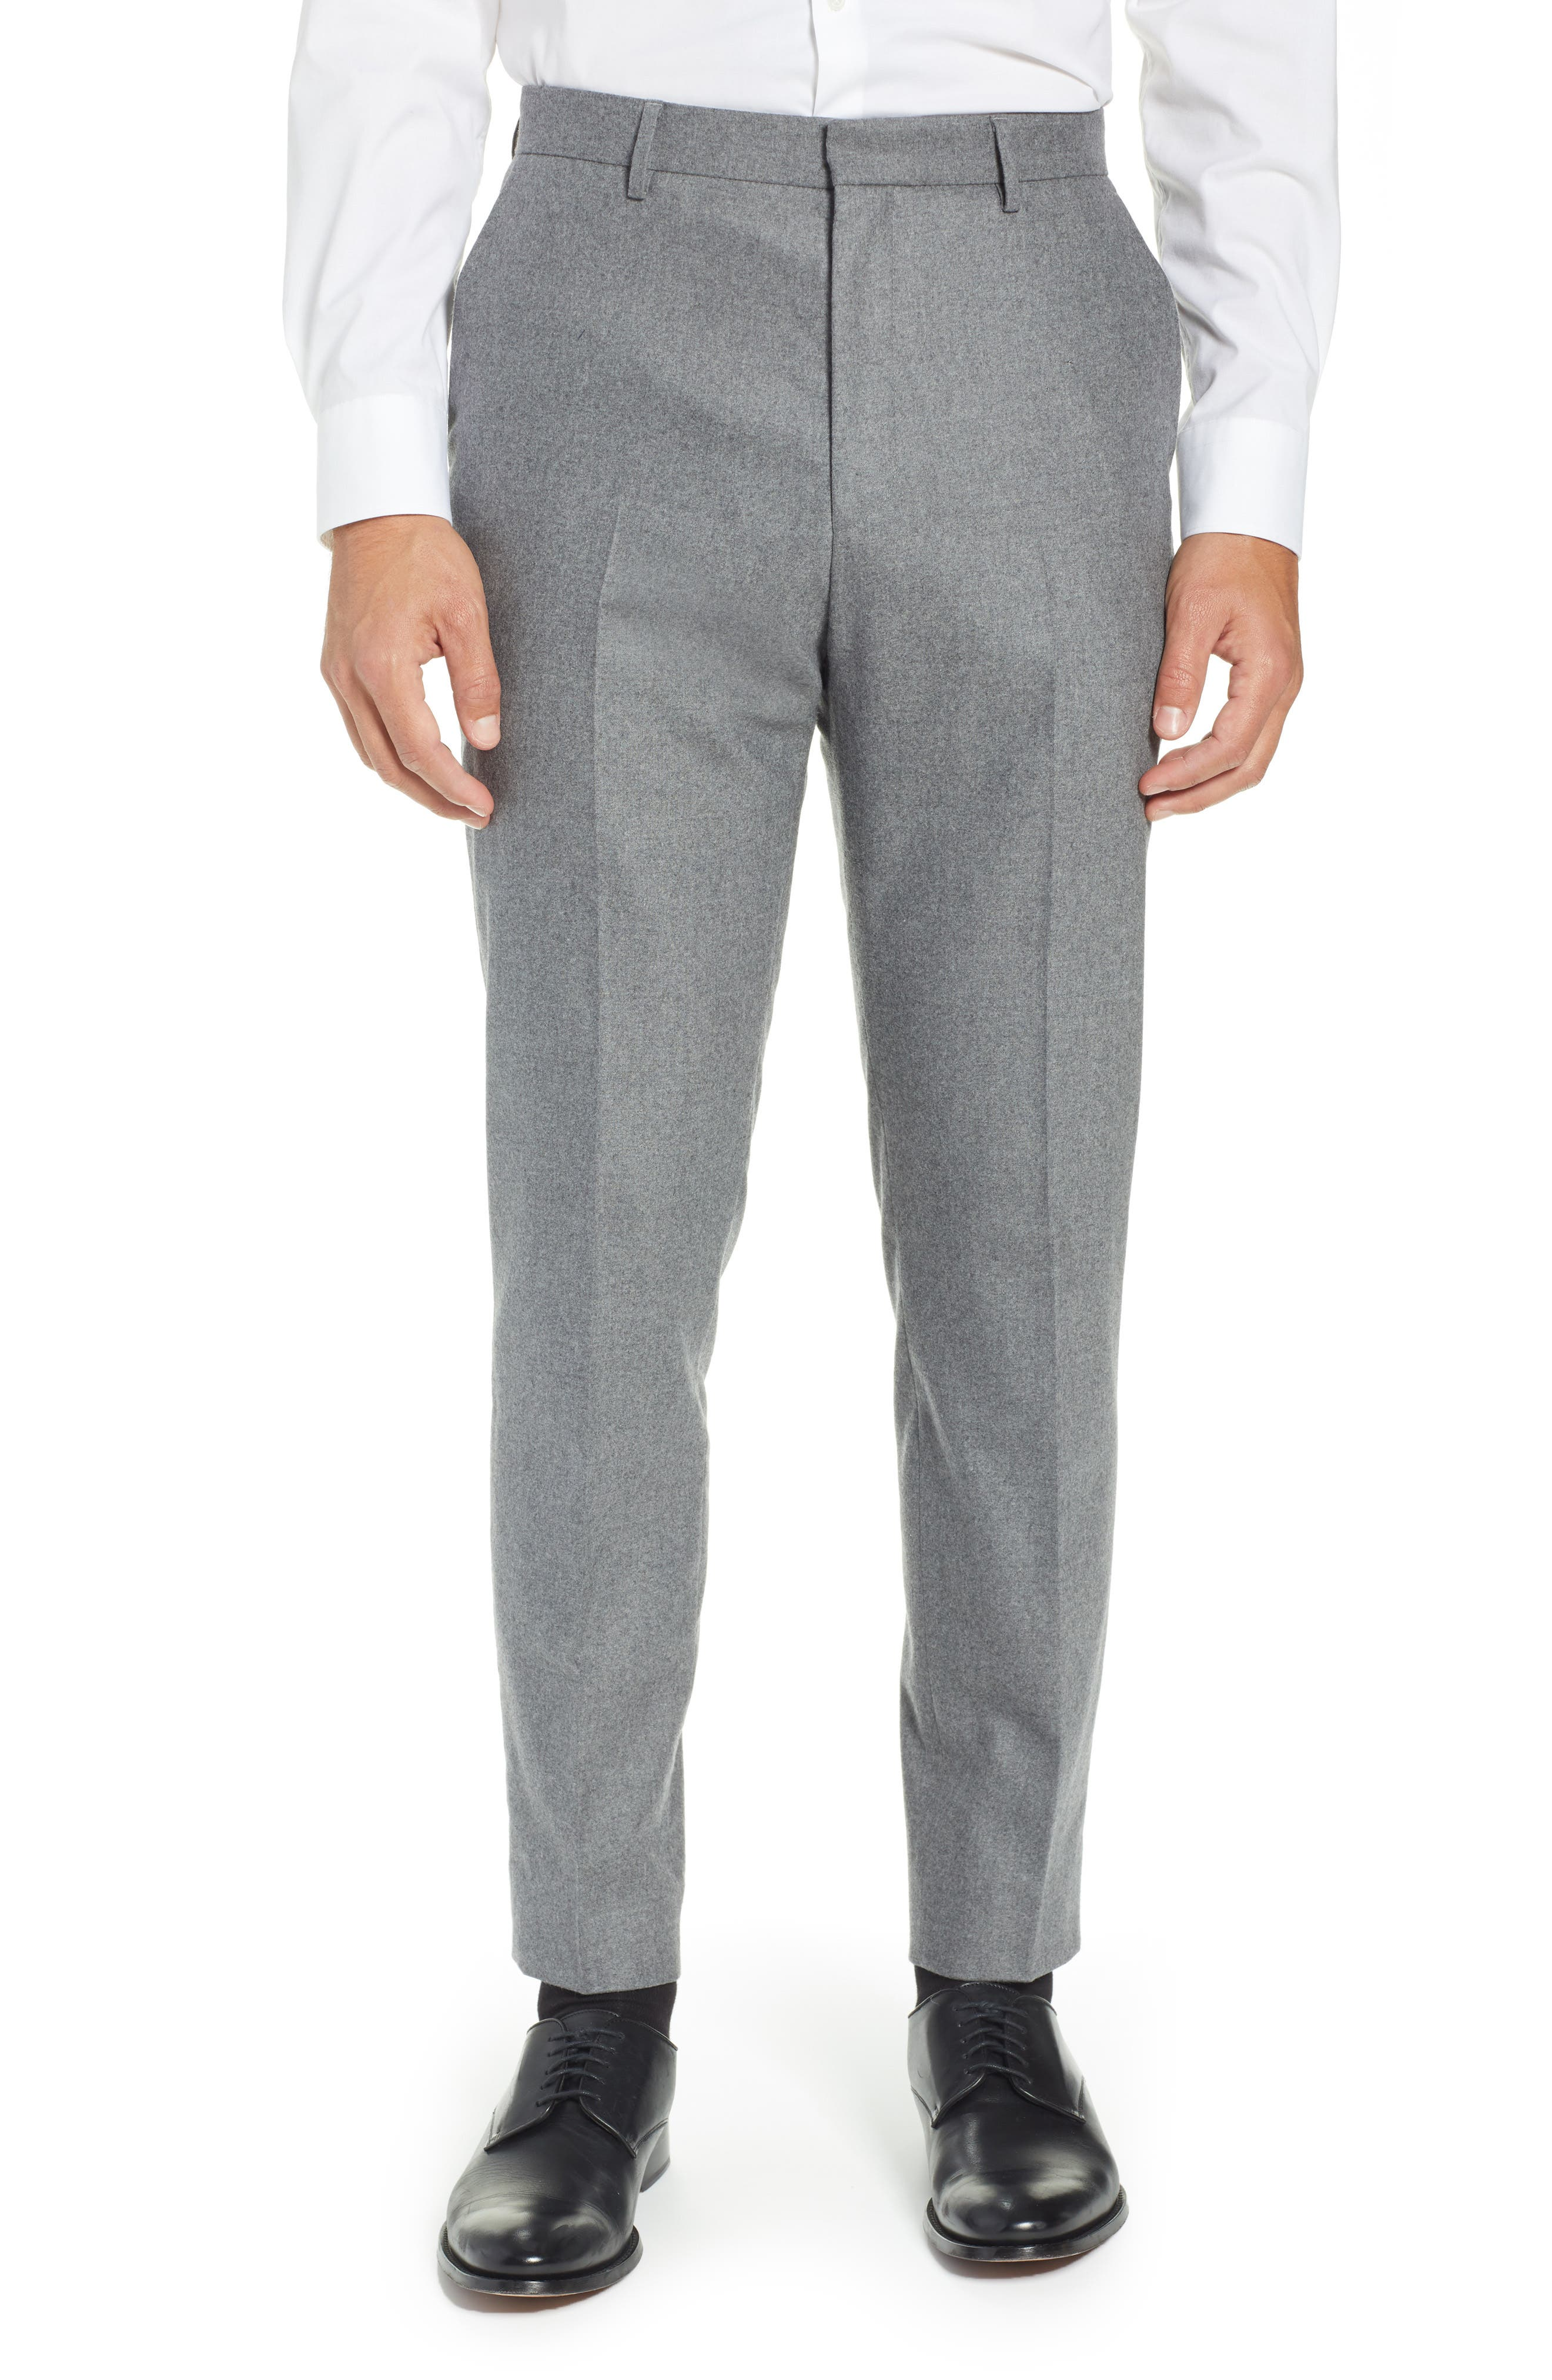 Pirko Flat Front Solid Stretch Wool Trousers,                             Main thumbnail 1, color,                             MEDIUM GREY